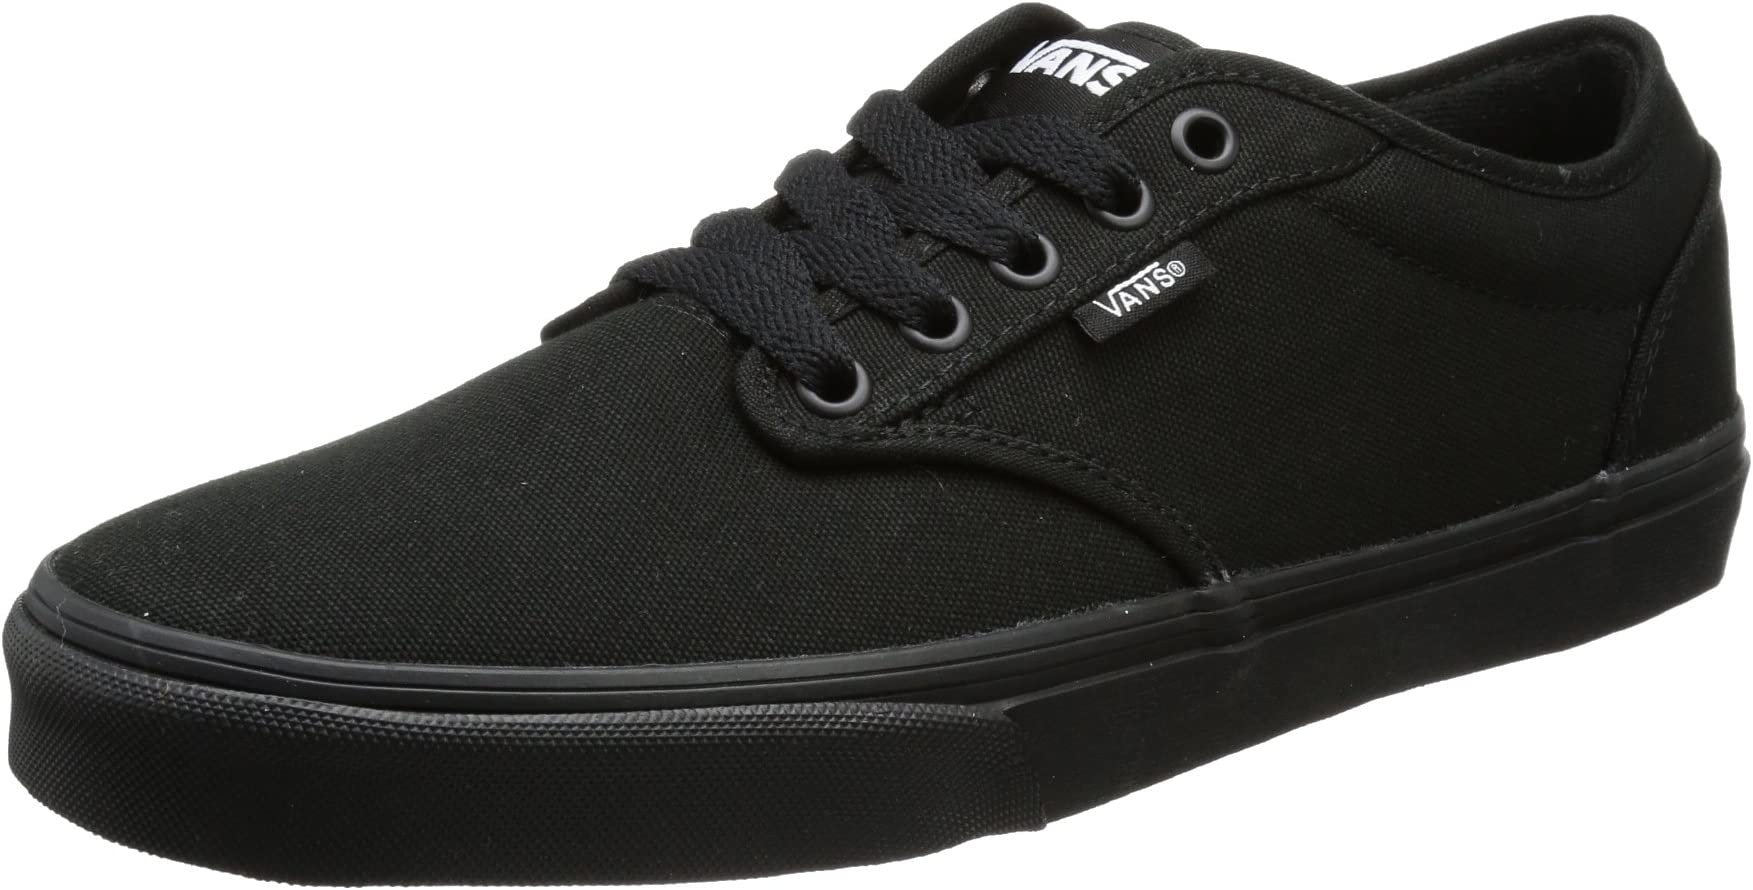 vans velcro shoes mens nz